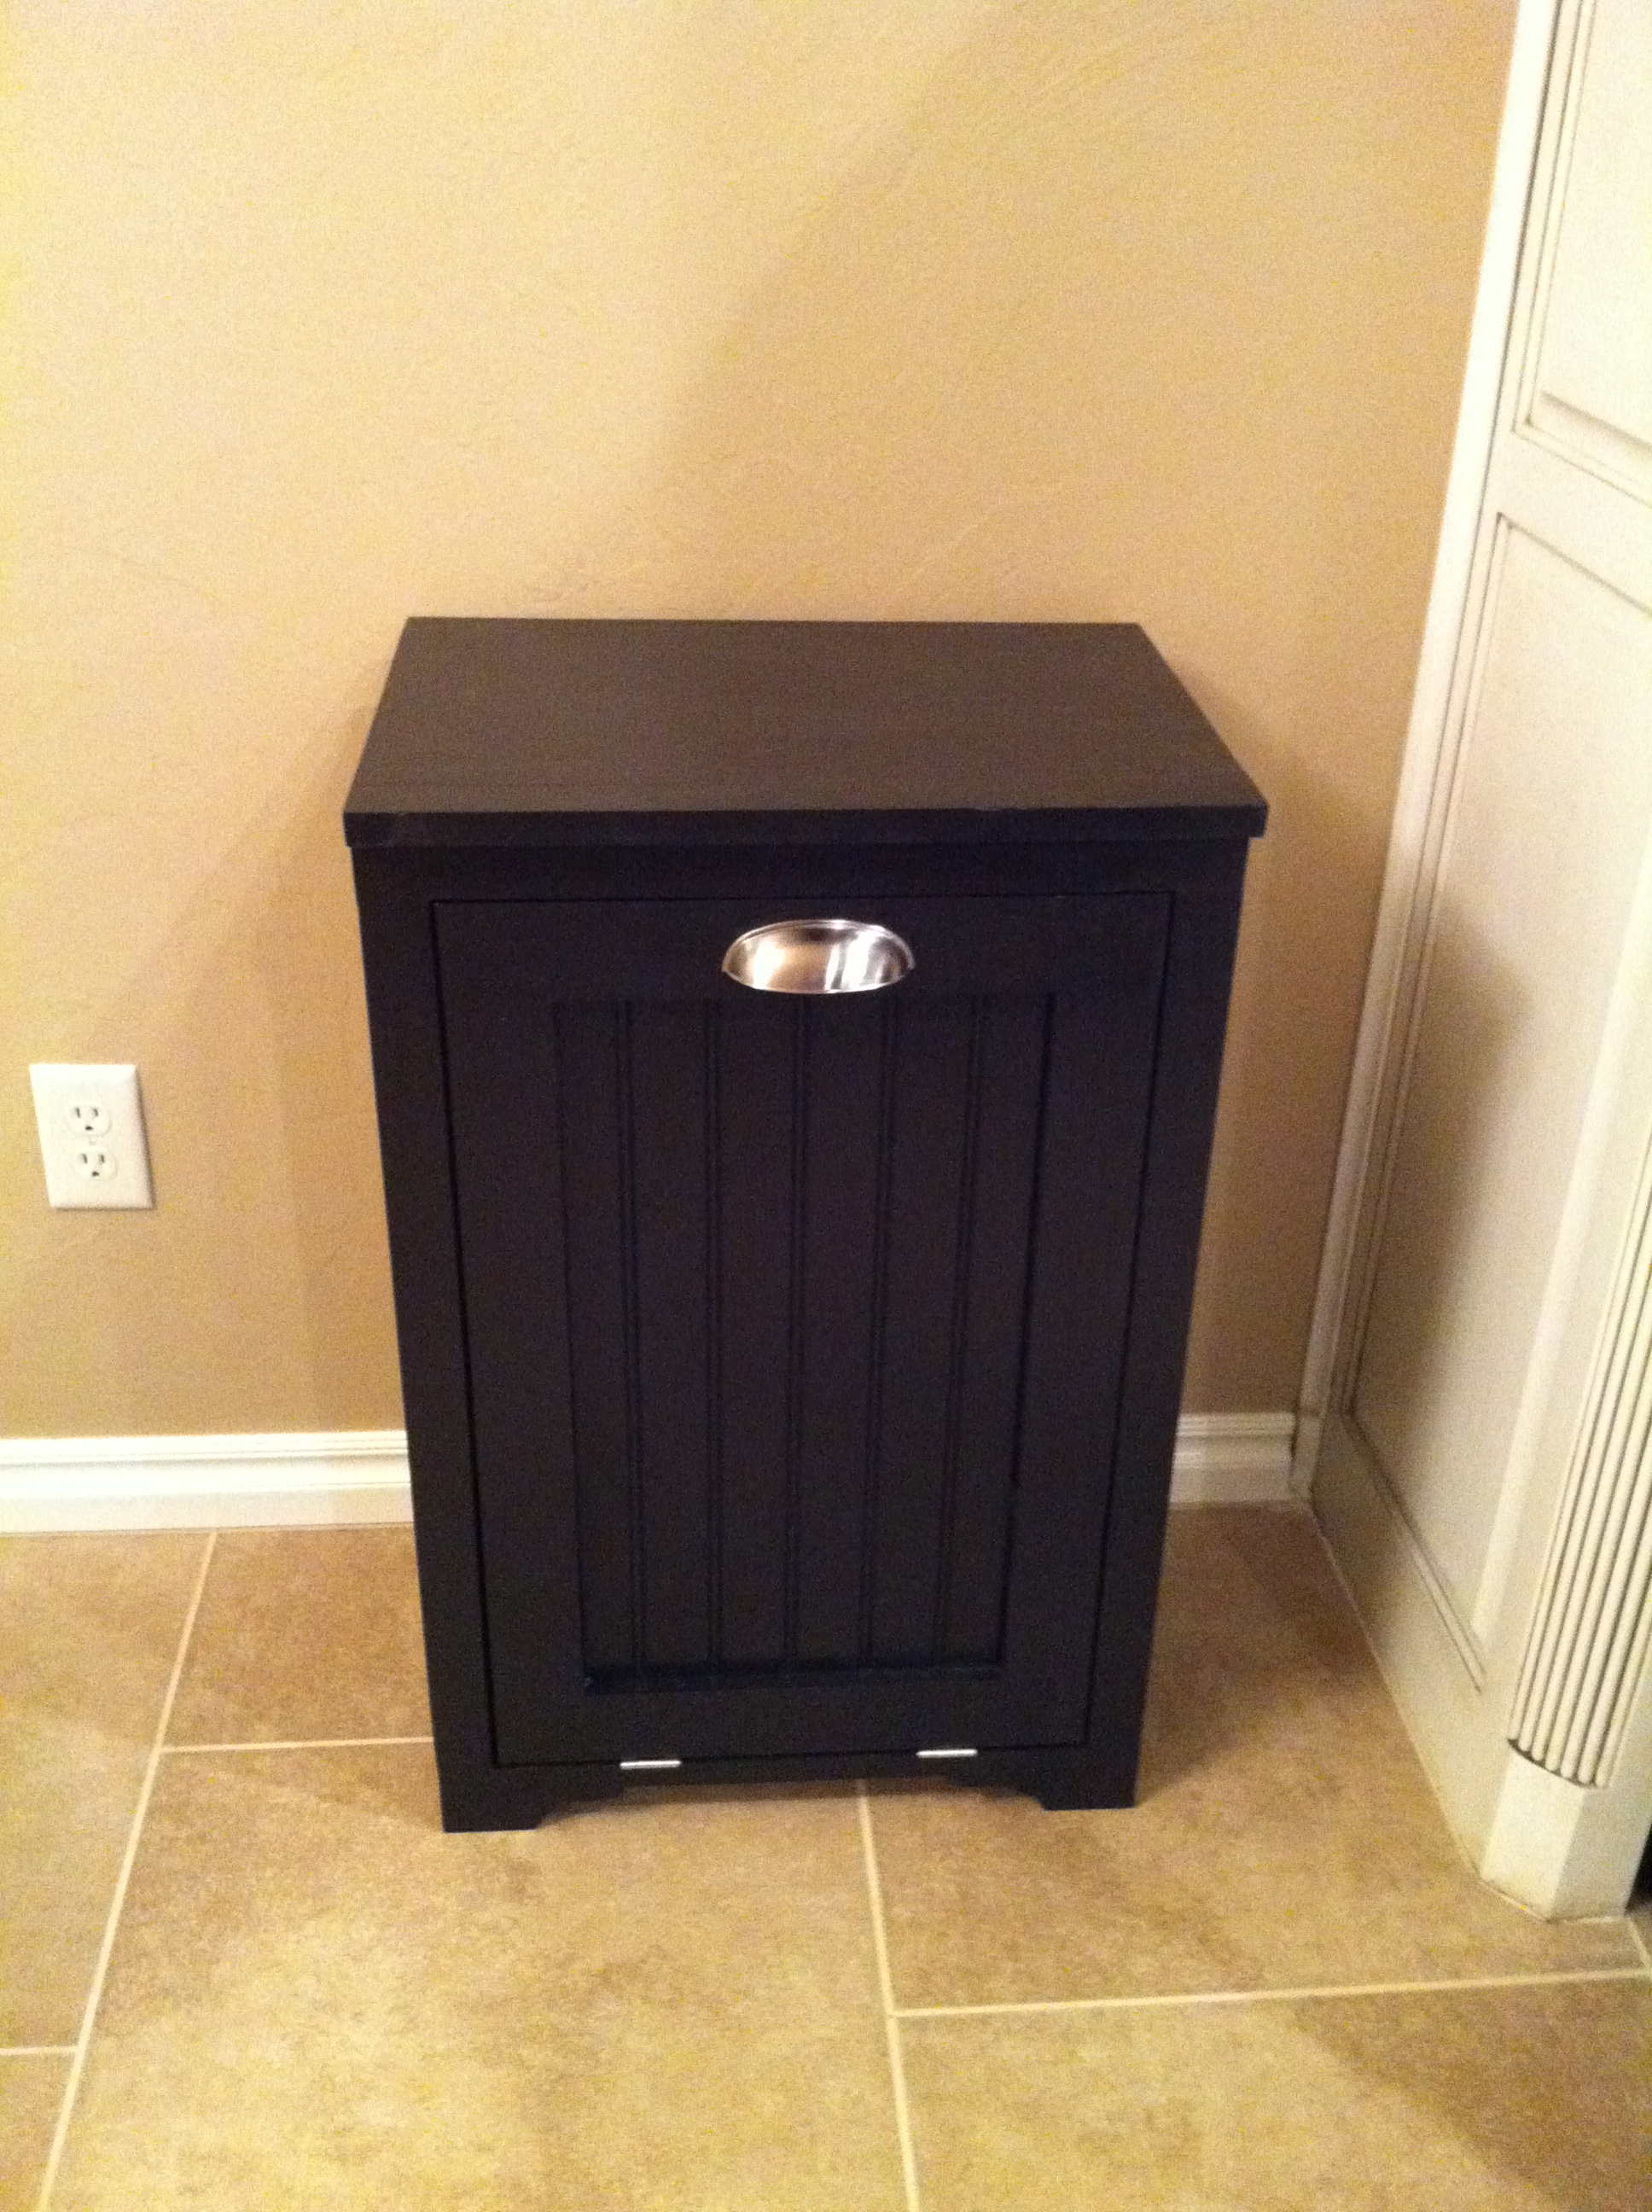 marvelous Kitchen Garbage Can Cabinet #8: Trash Can For Kitchen Kitchen Storage Ideas Kitchen With Hidden .